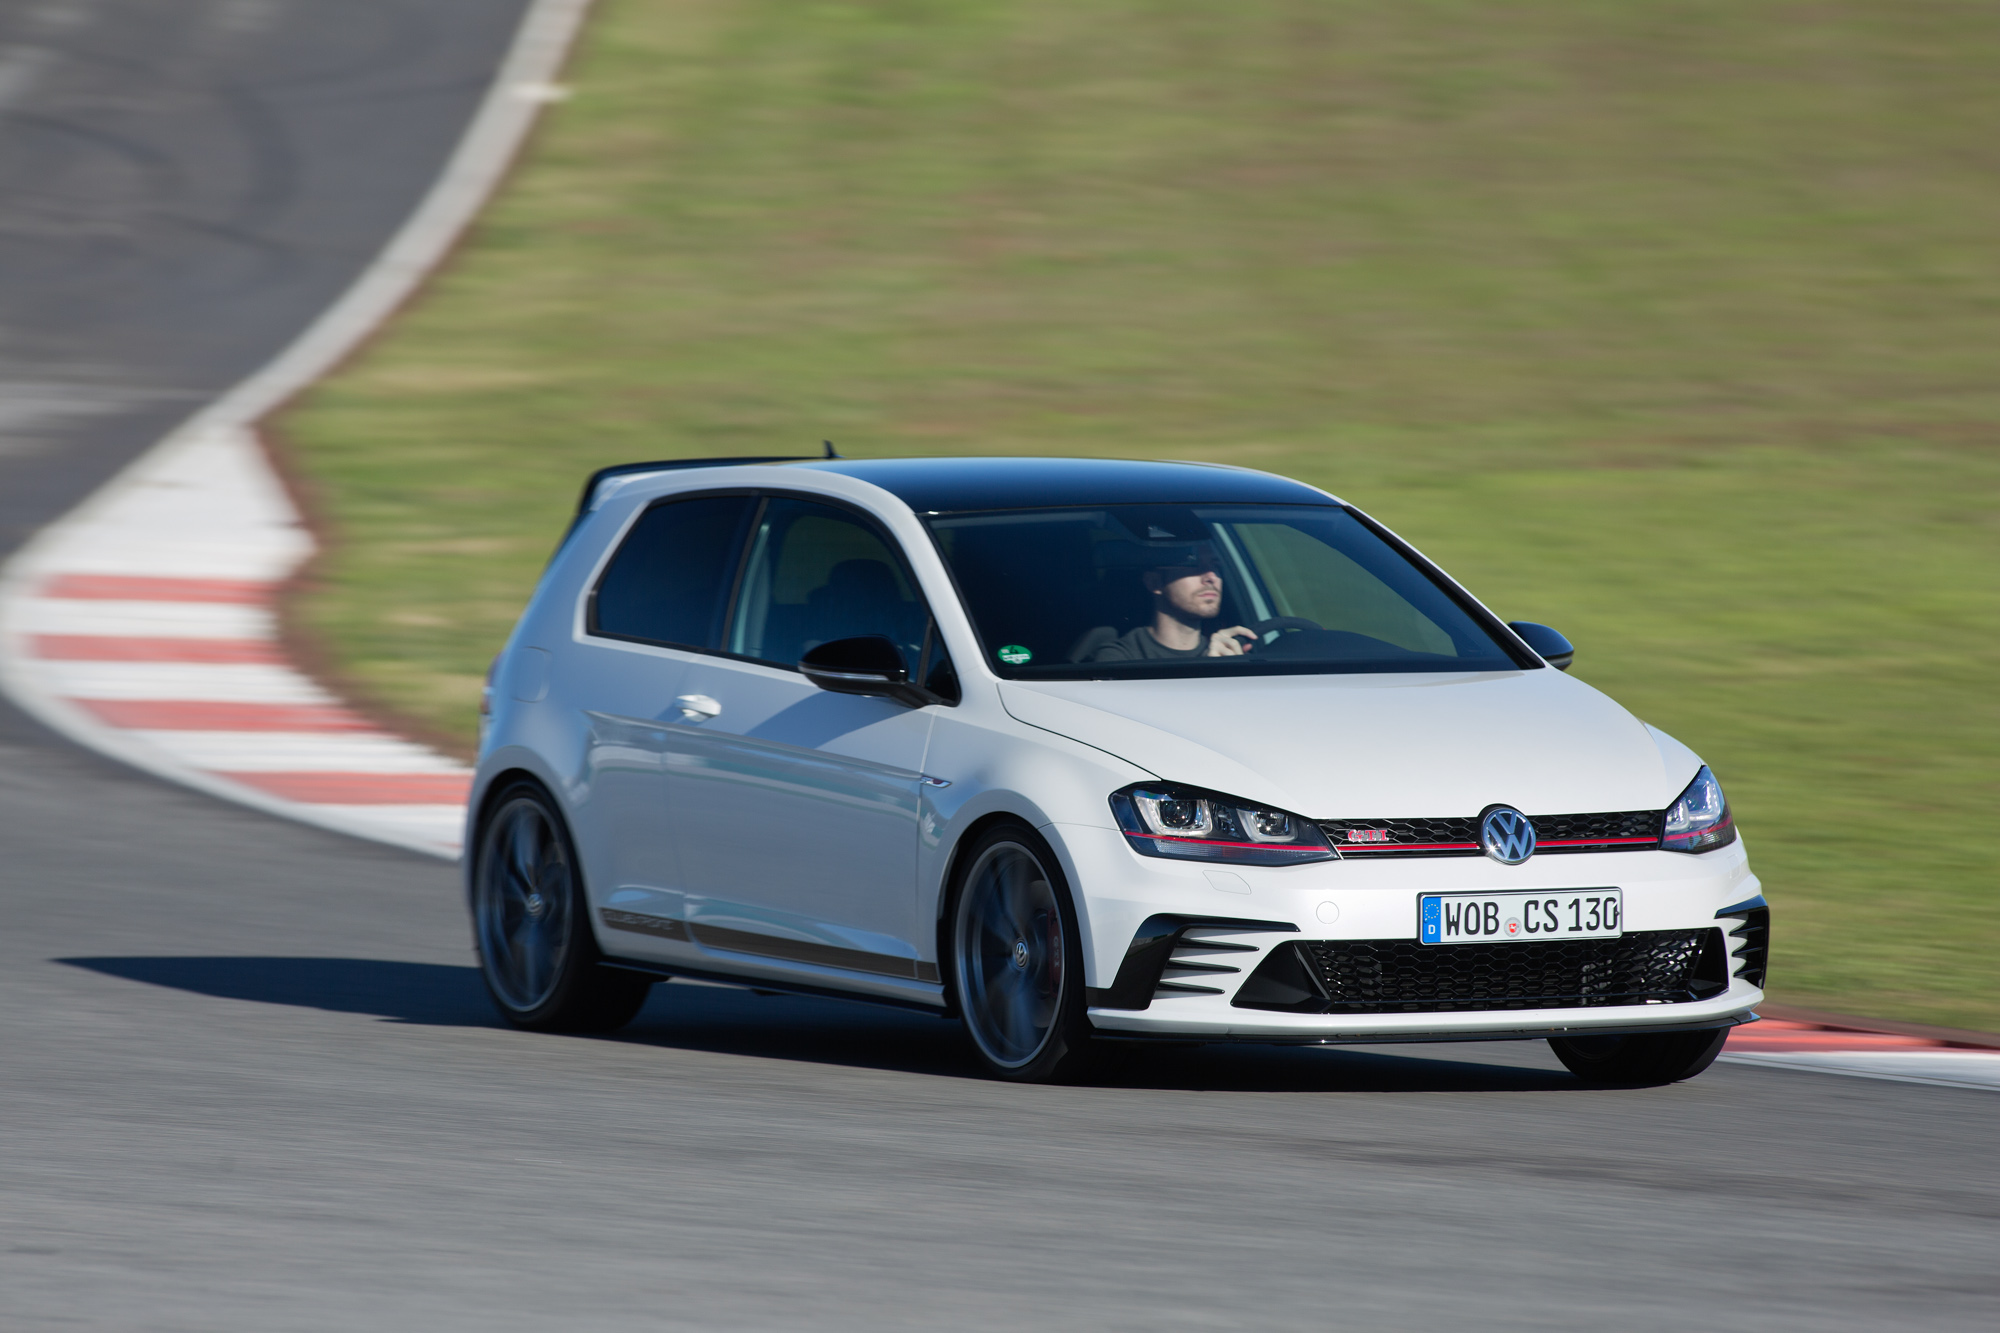 Volkswagen Golf Gti Clubsport Review Prices Specs And 0 60 Time Evo